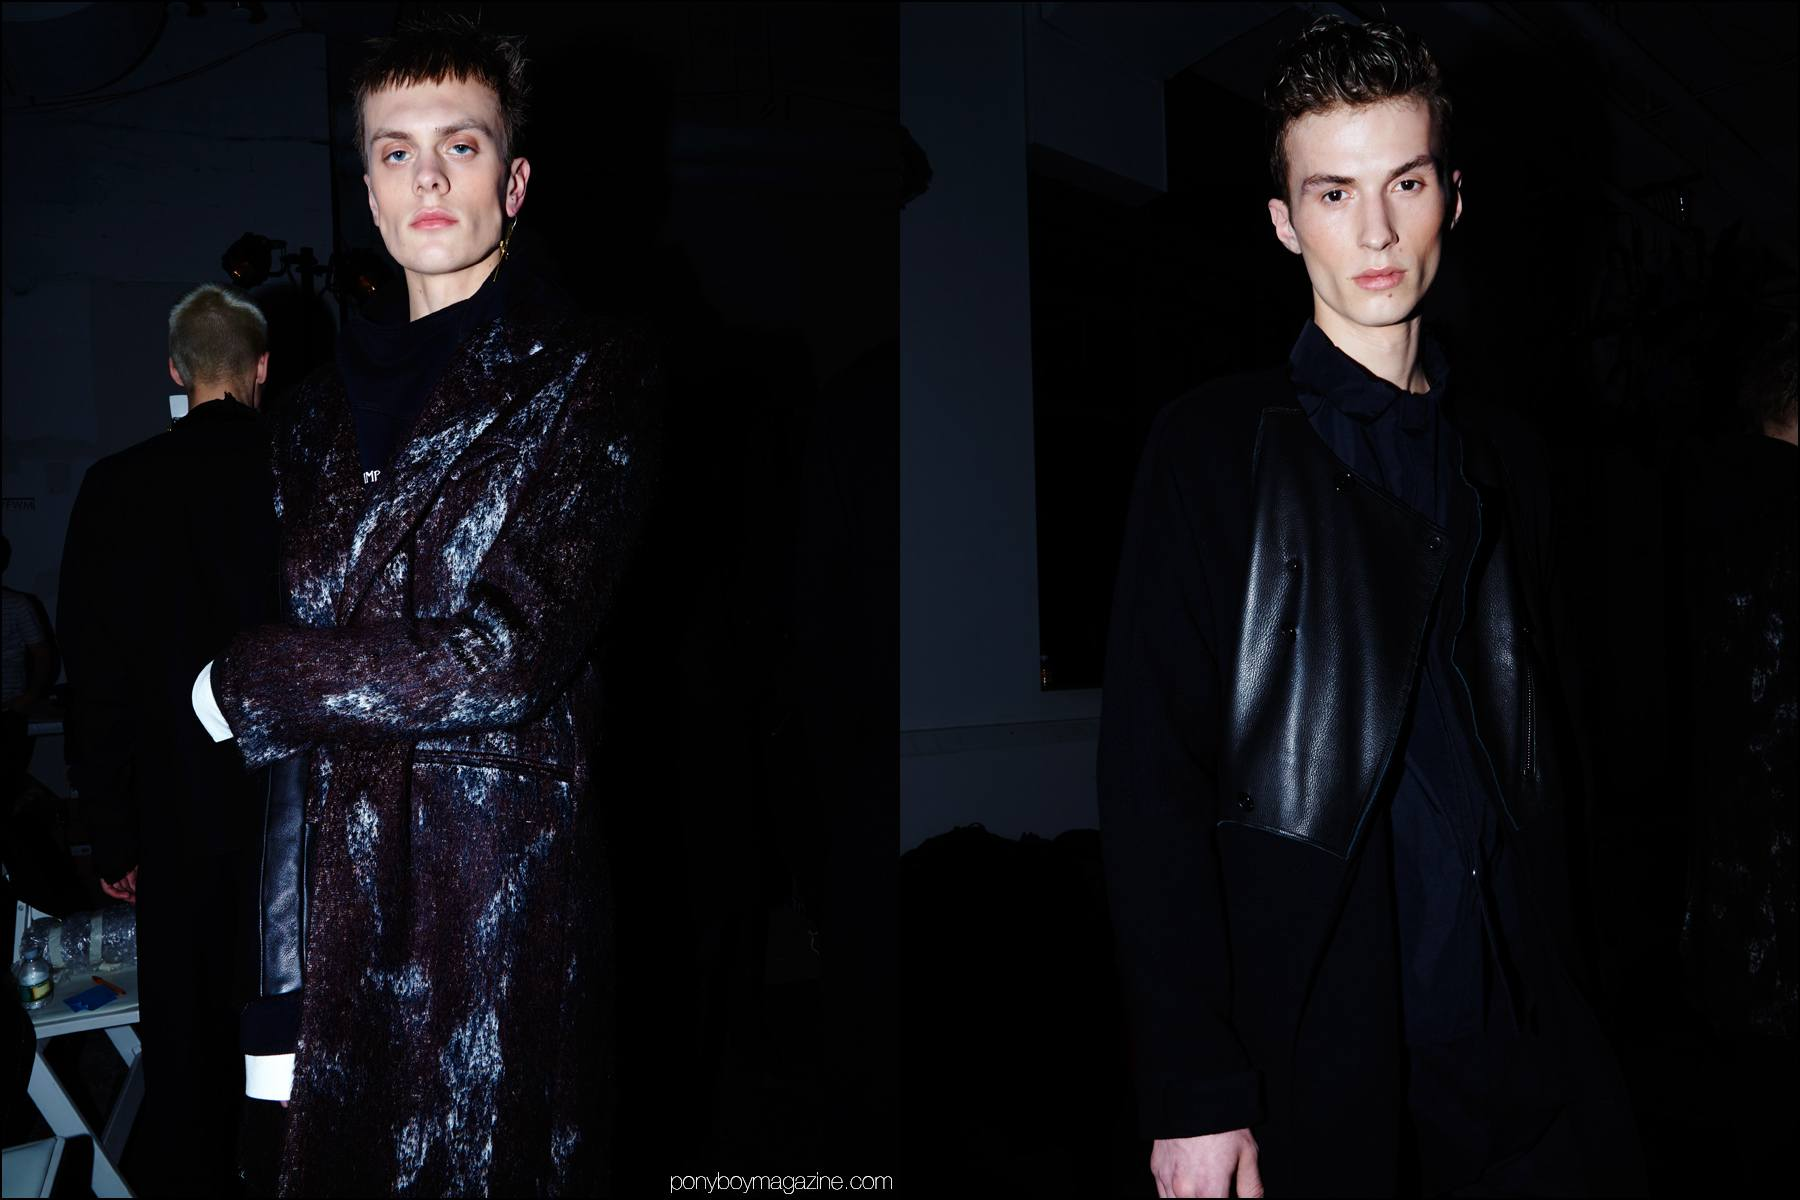 Male models Ian Welgarz and Zach Troost photographed backstage at Siki Im + Den Im F/W16 menswear show. Photography by Alexander Thompson for Ponyboy magazine NY.